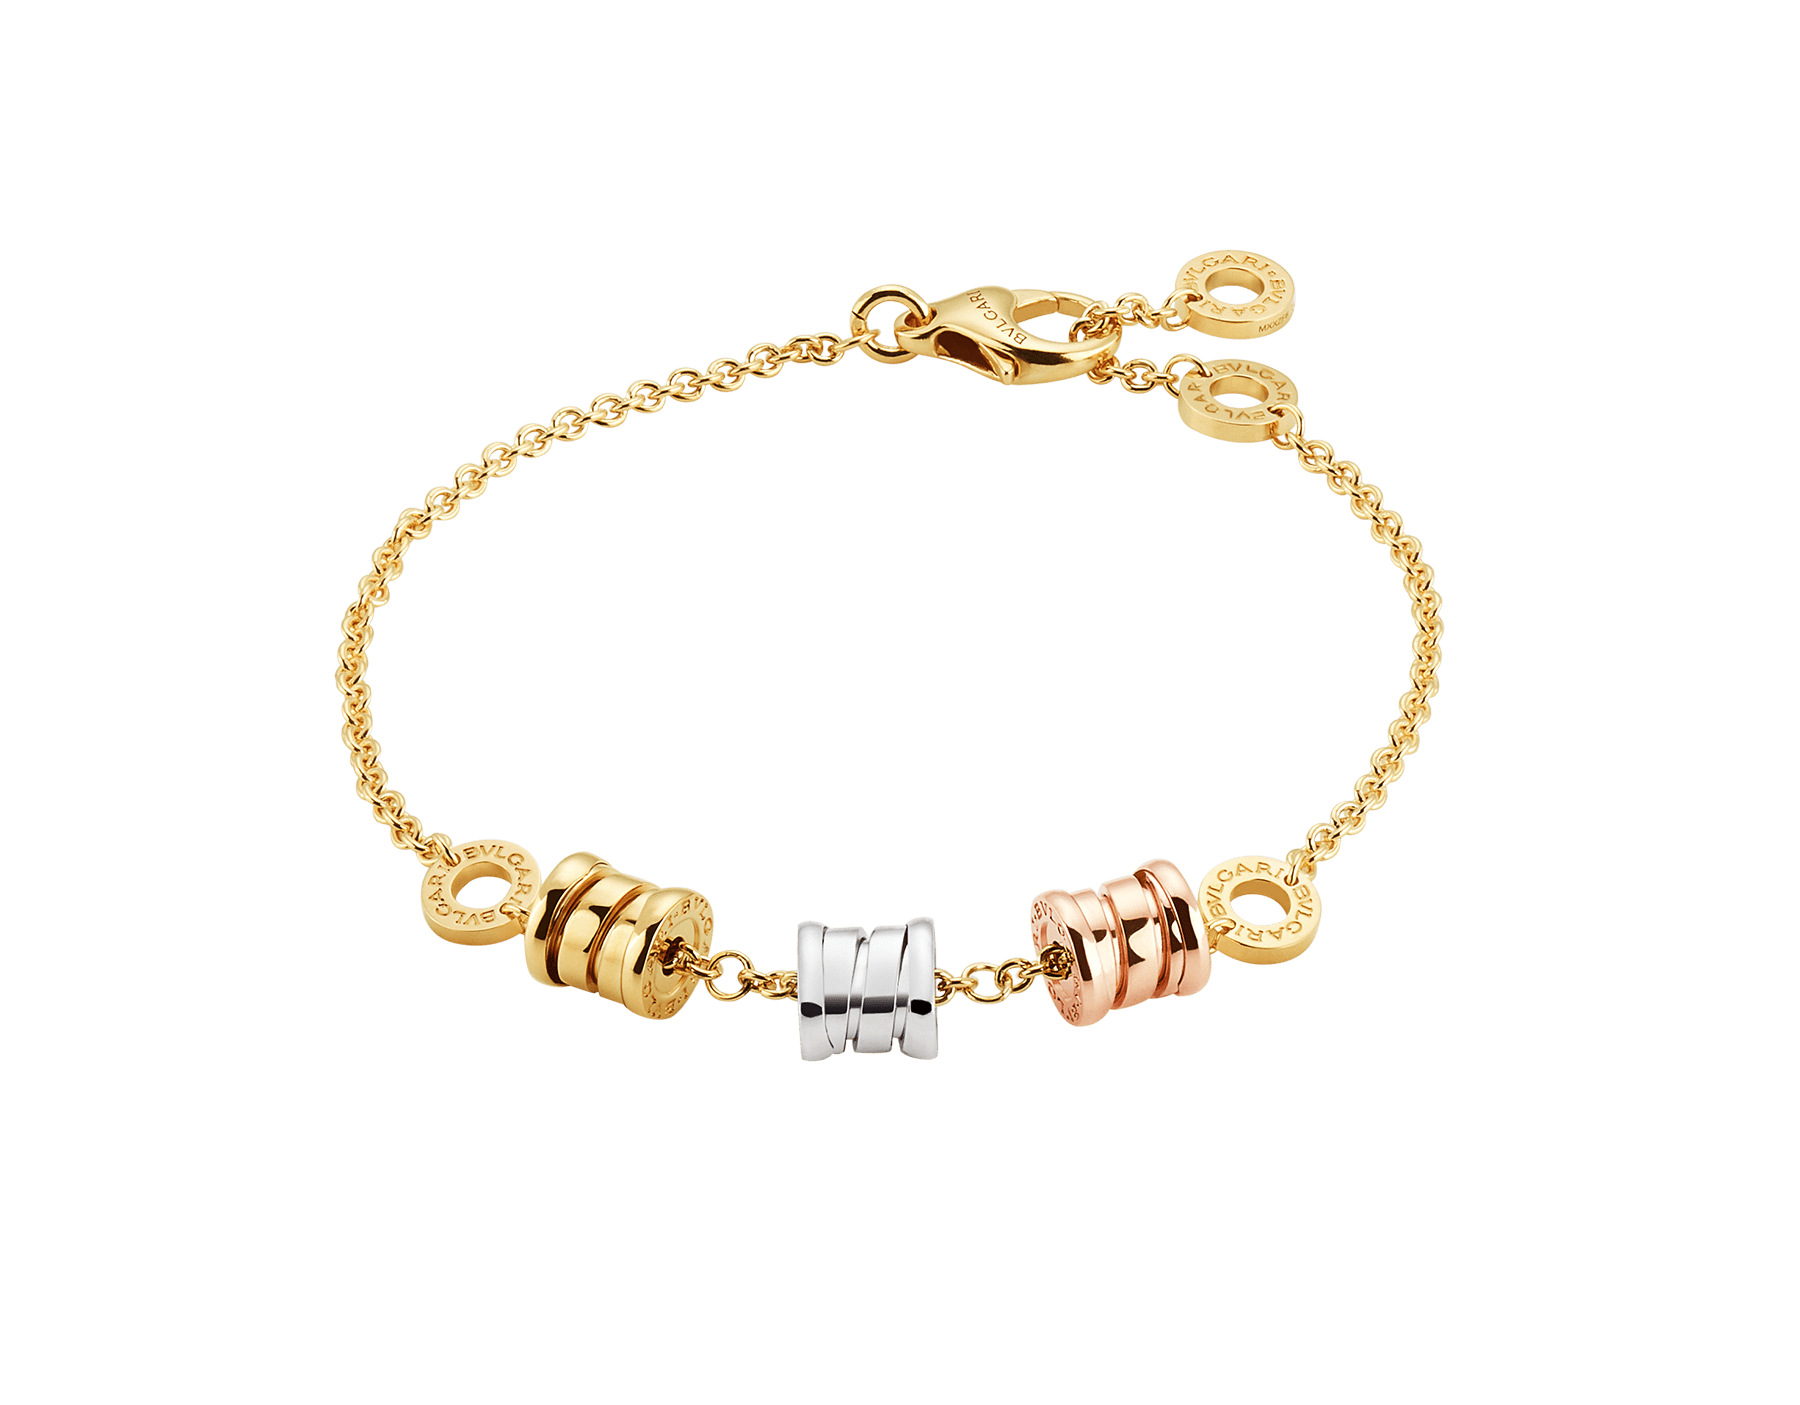 B.zero1 soft bracelet with 18 kt yellow gold chain and three spirals in yellow, white and rose 18 kt gold. BR853666 image 1